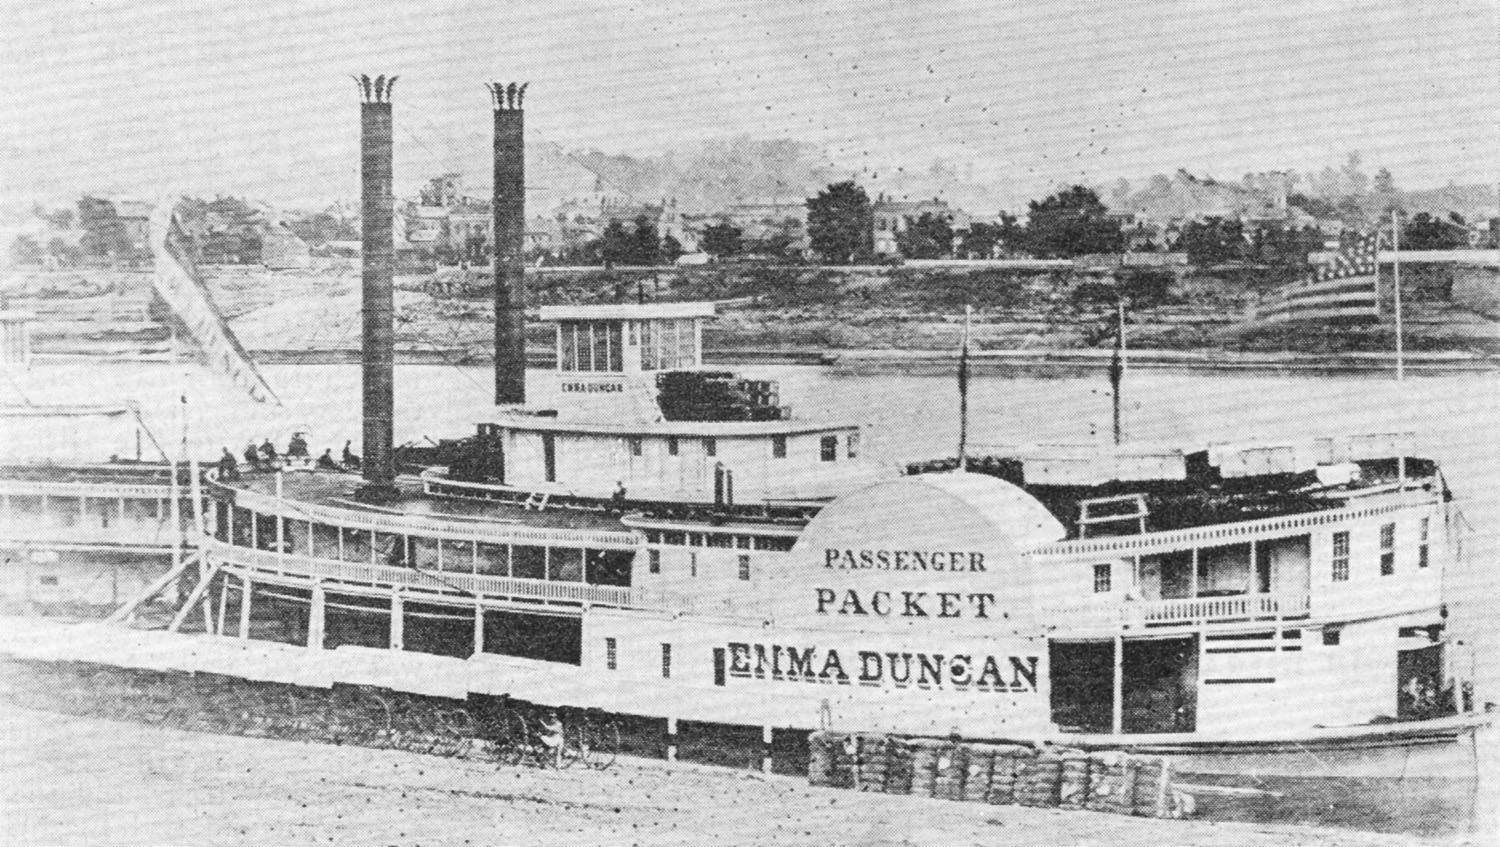 The Emma Duncan at Cincinnati in 1862. (Keith Norrington collection)